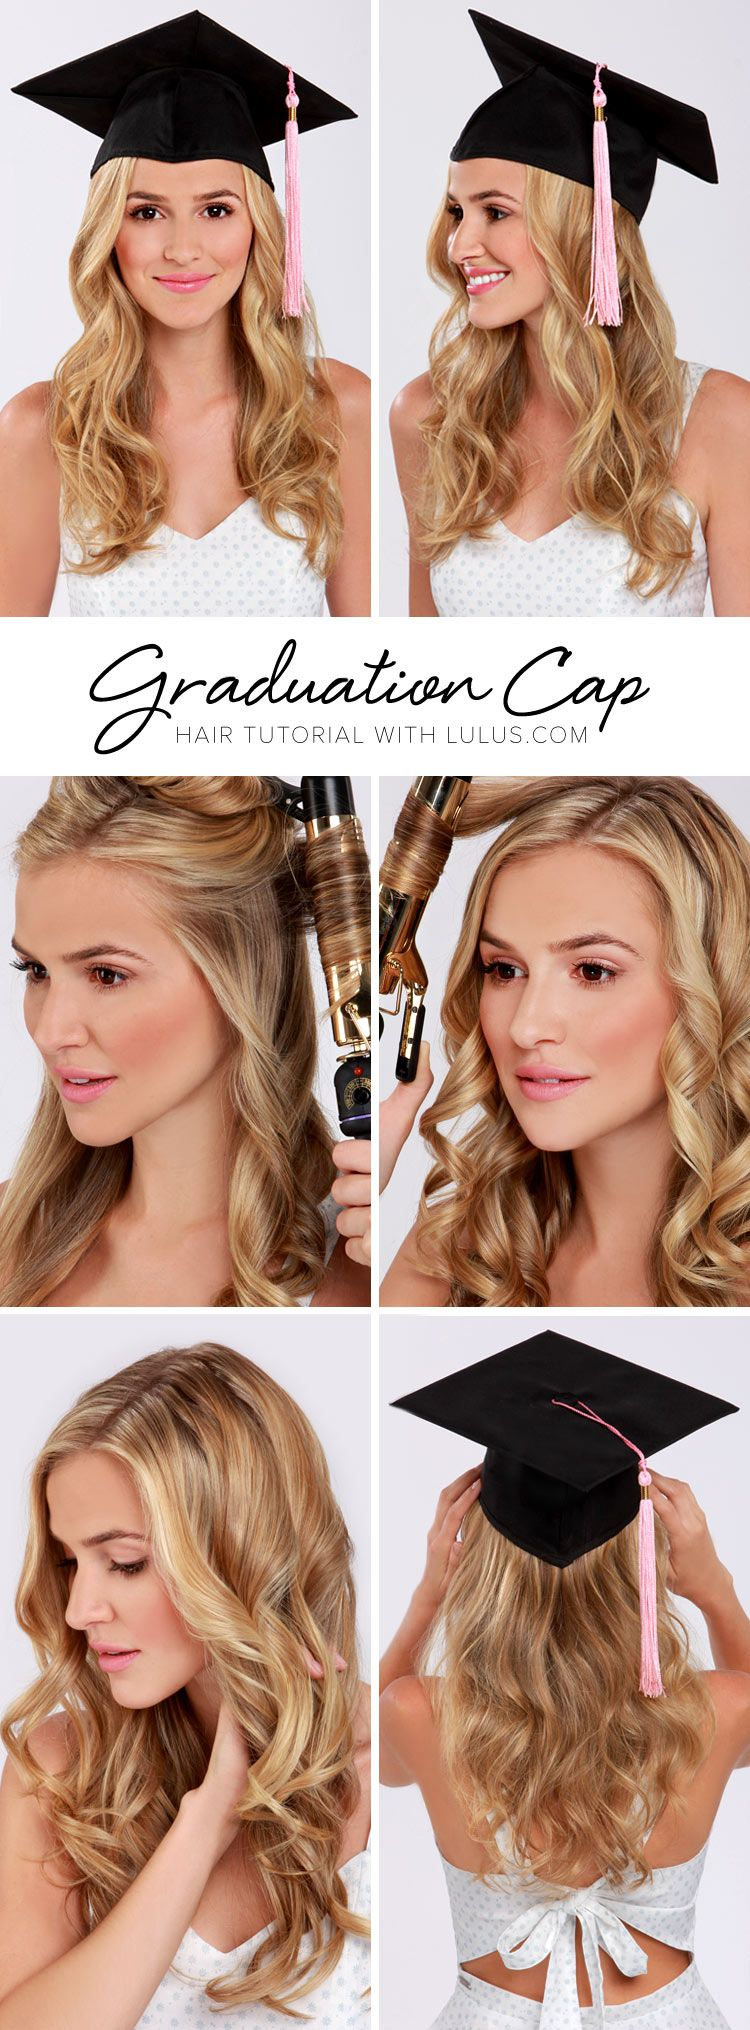 Graduation Hair on Pinterest | Graduation Hairstyles, Waterfall Braid Prom and Prom Hair Updo